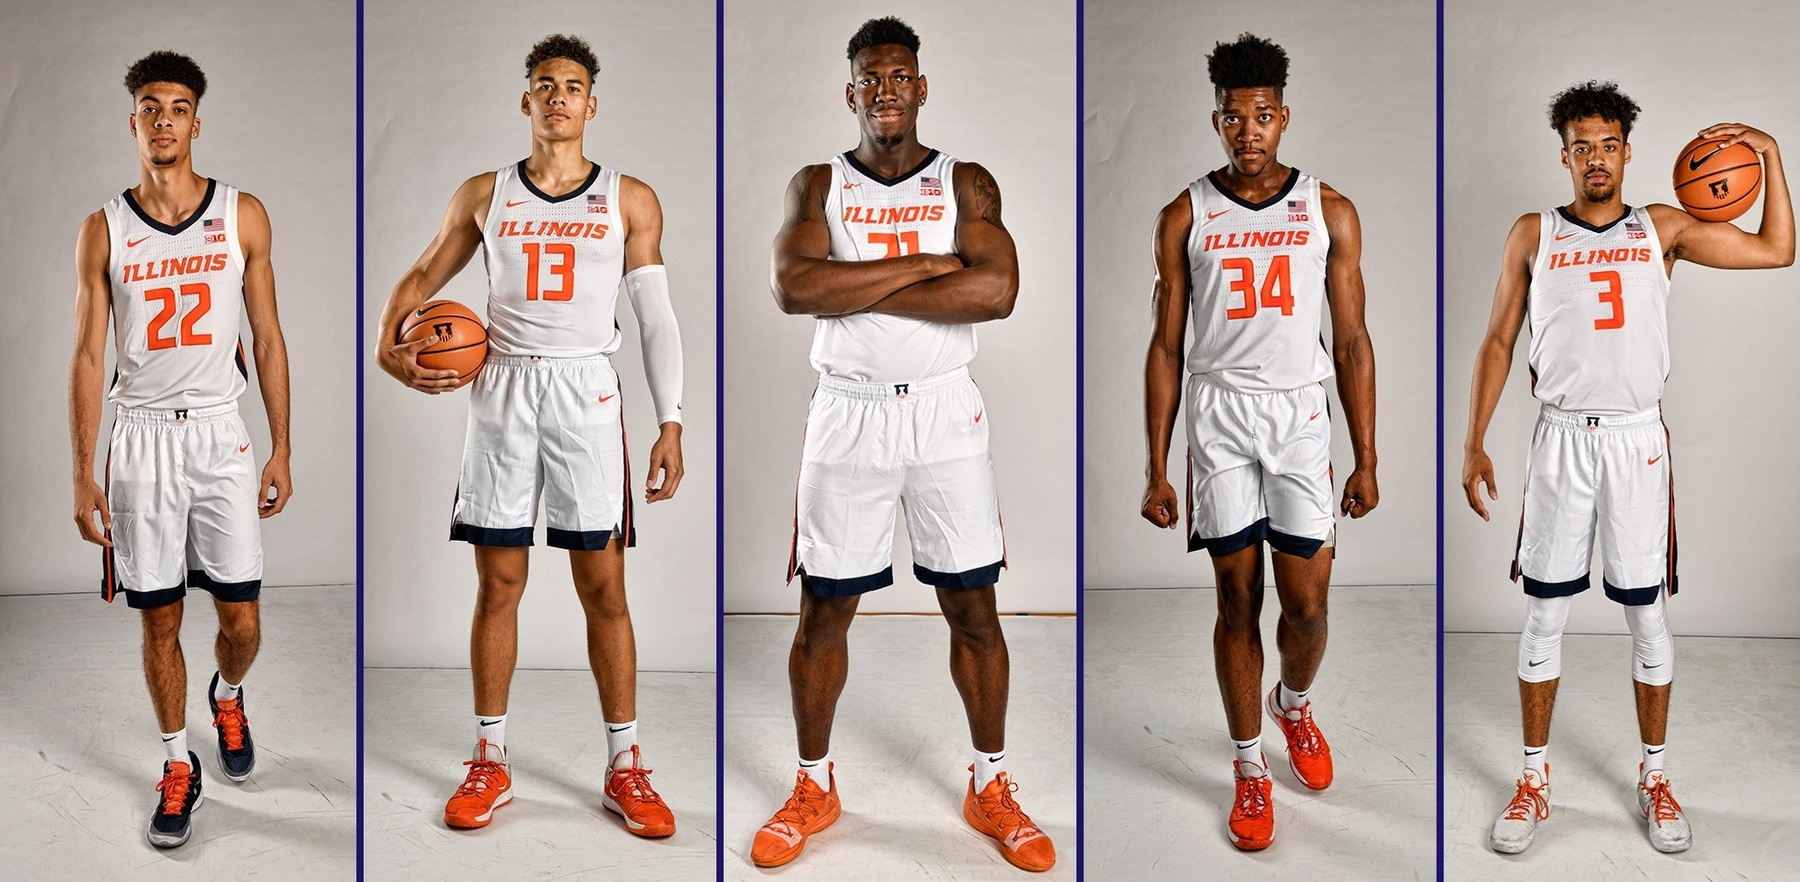 the five new players in Illini uniforms